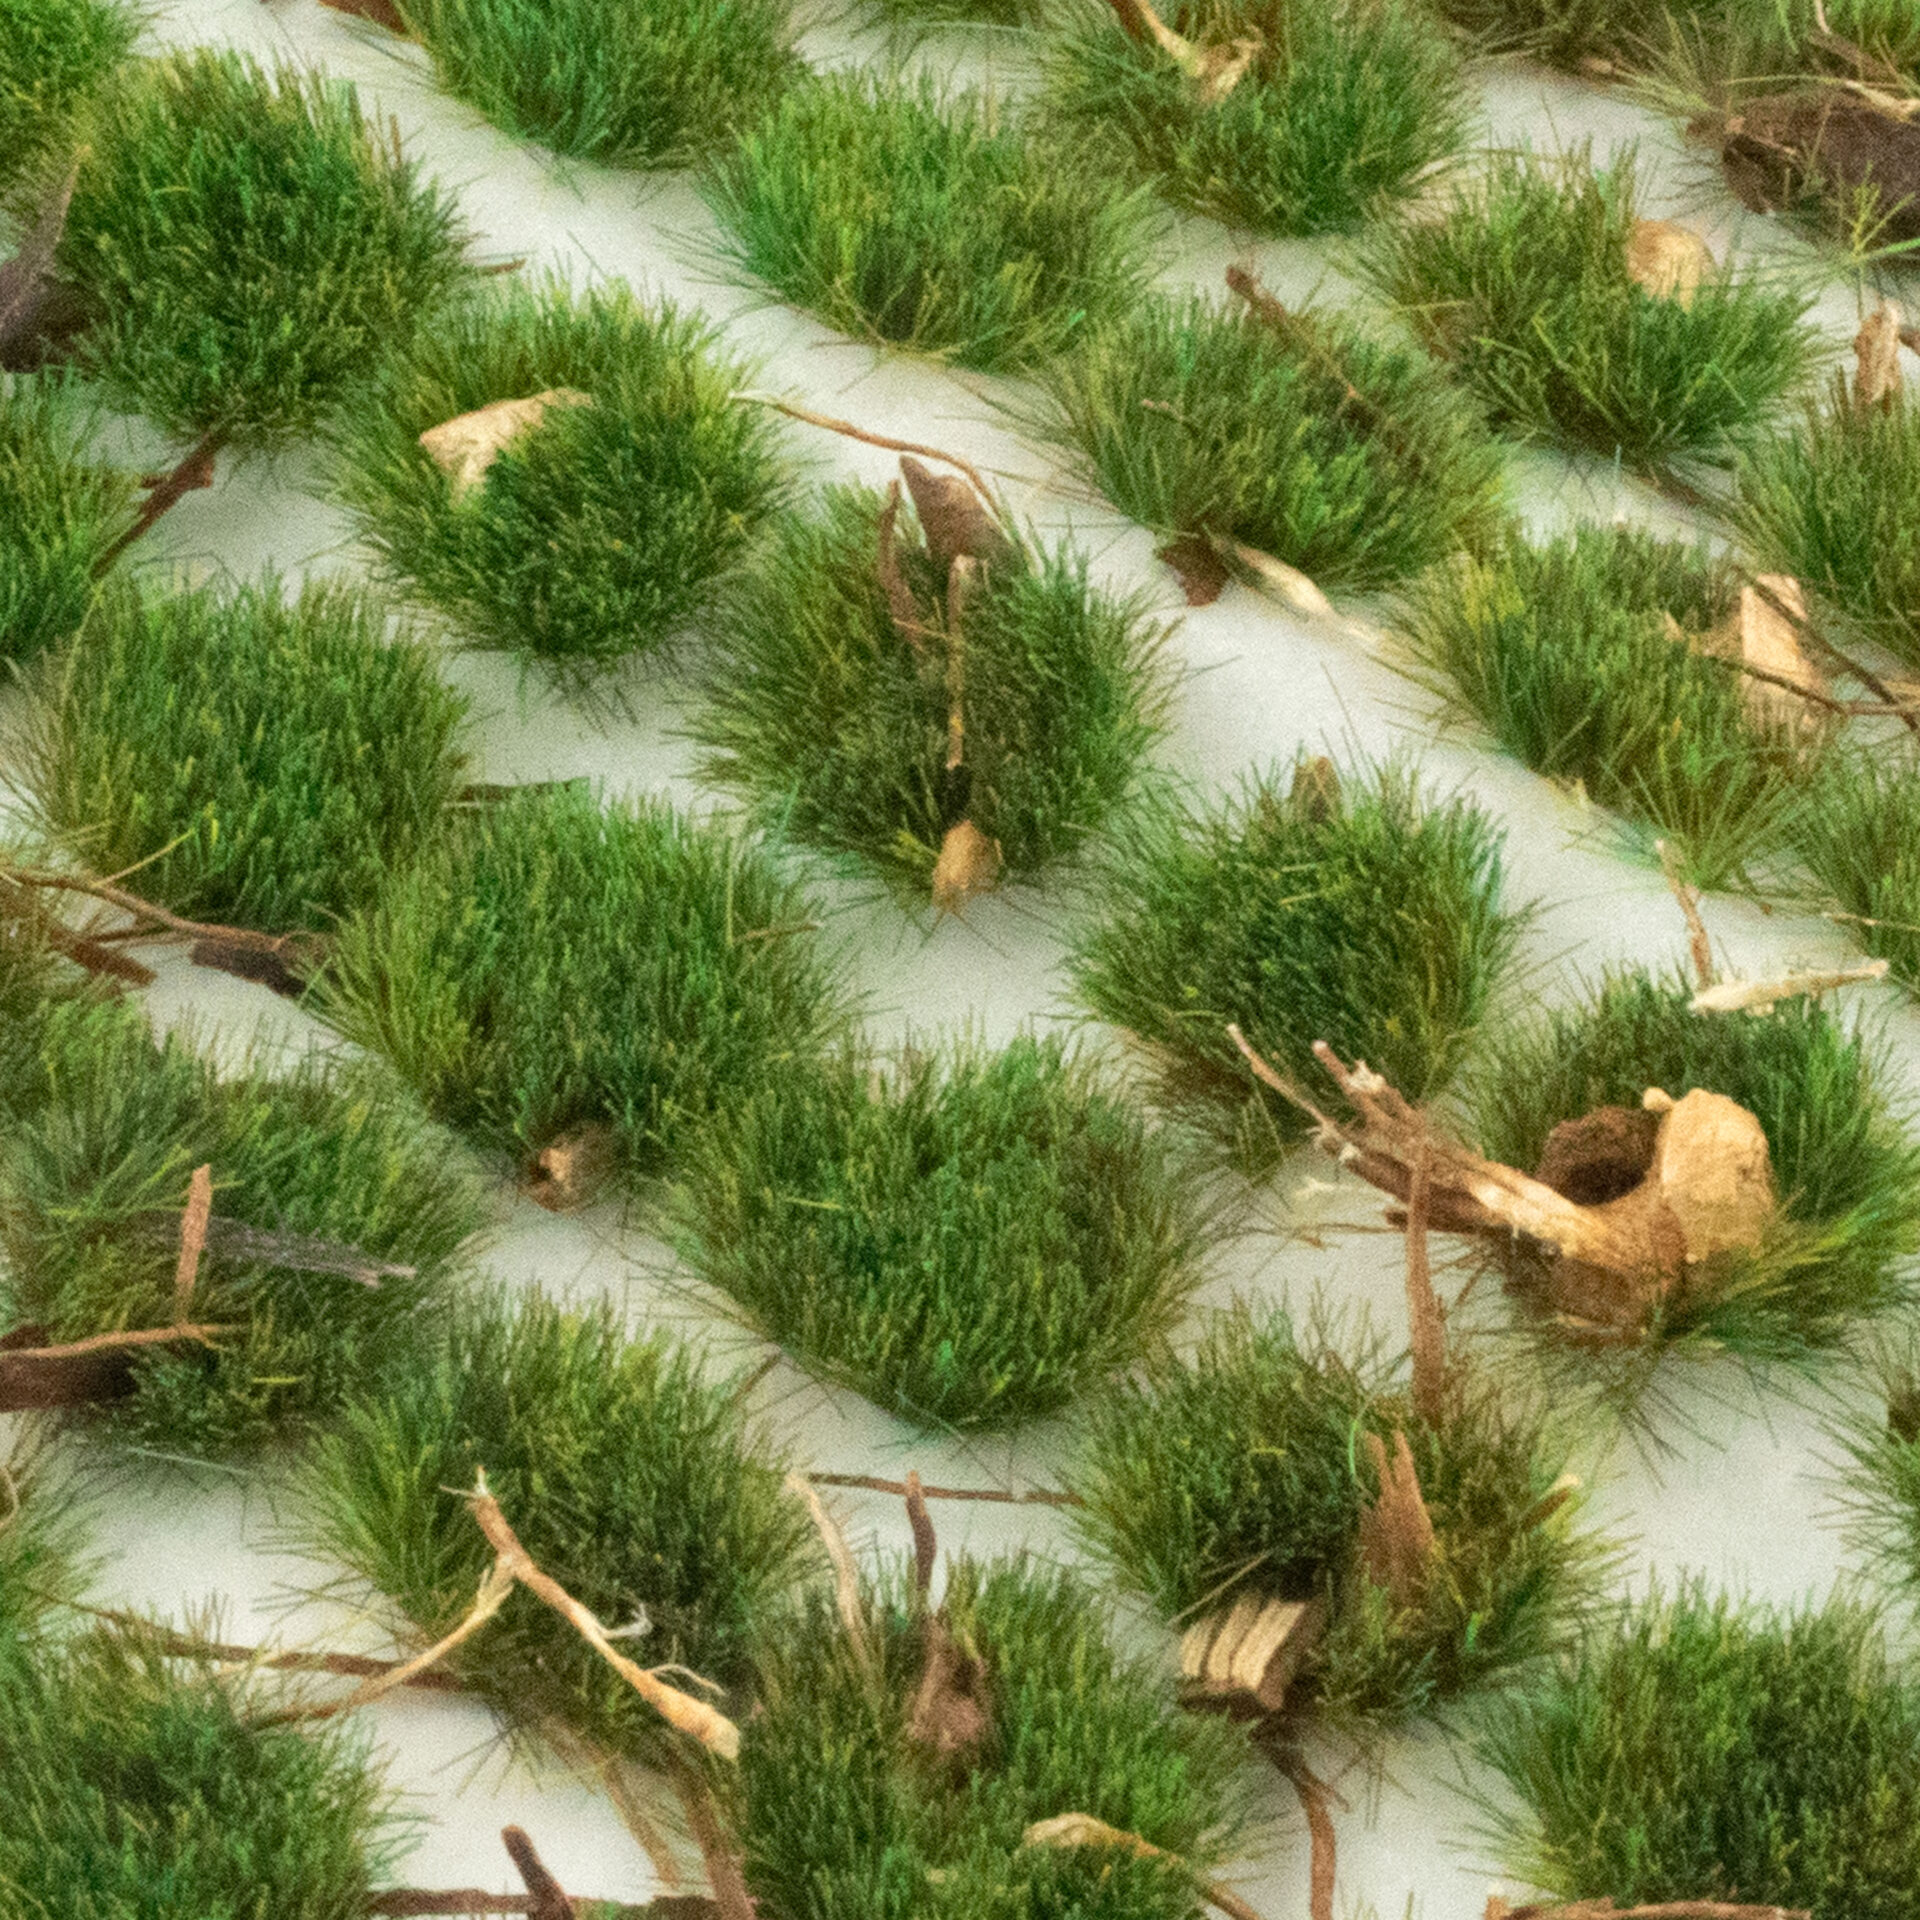 Forest Ground Cover Self Adhesive Static Grass Tufts X 100 Wwscenics